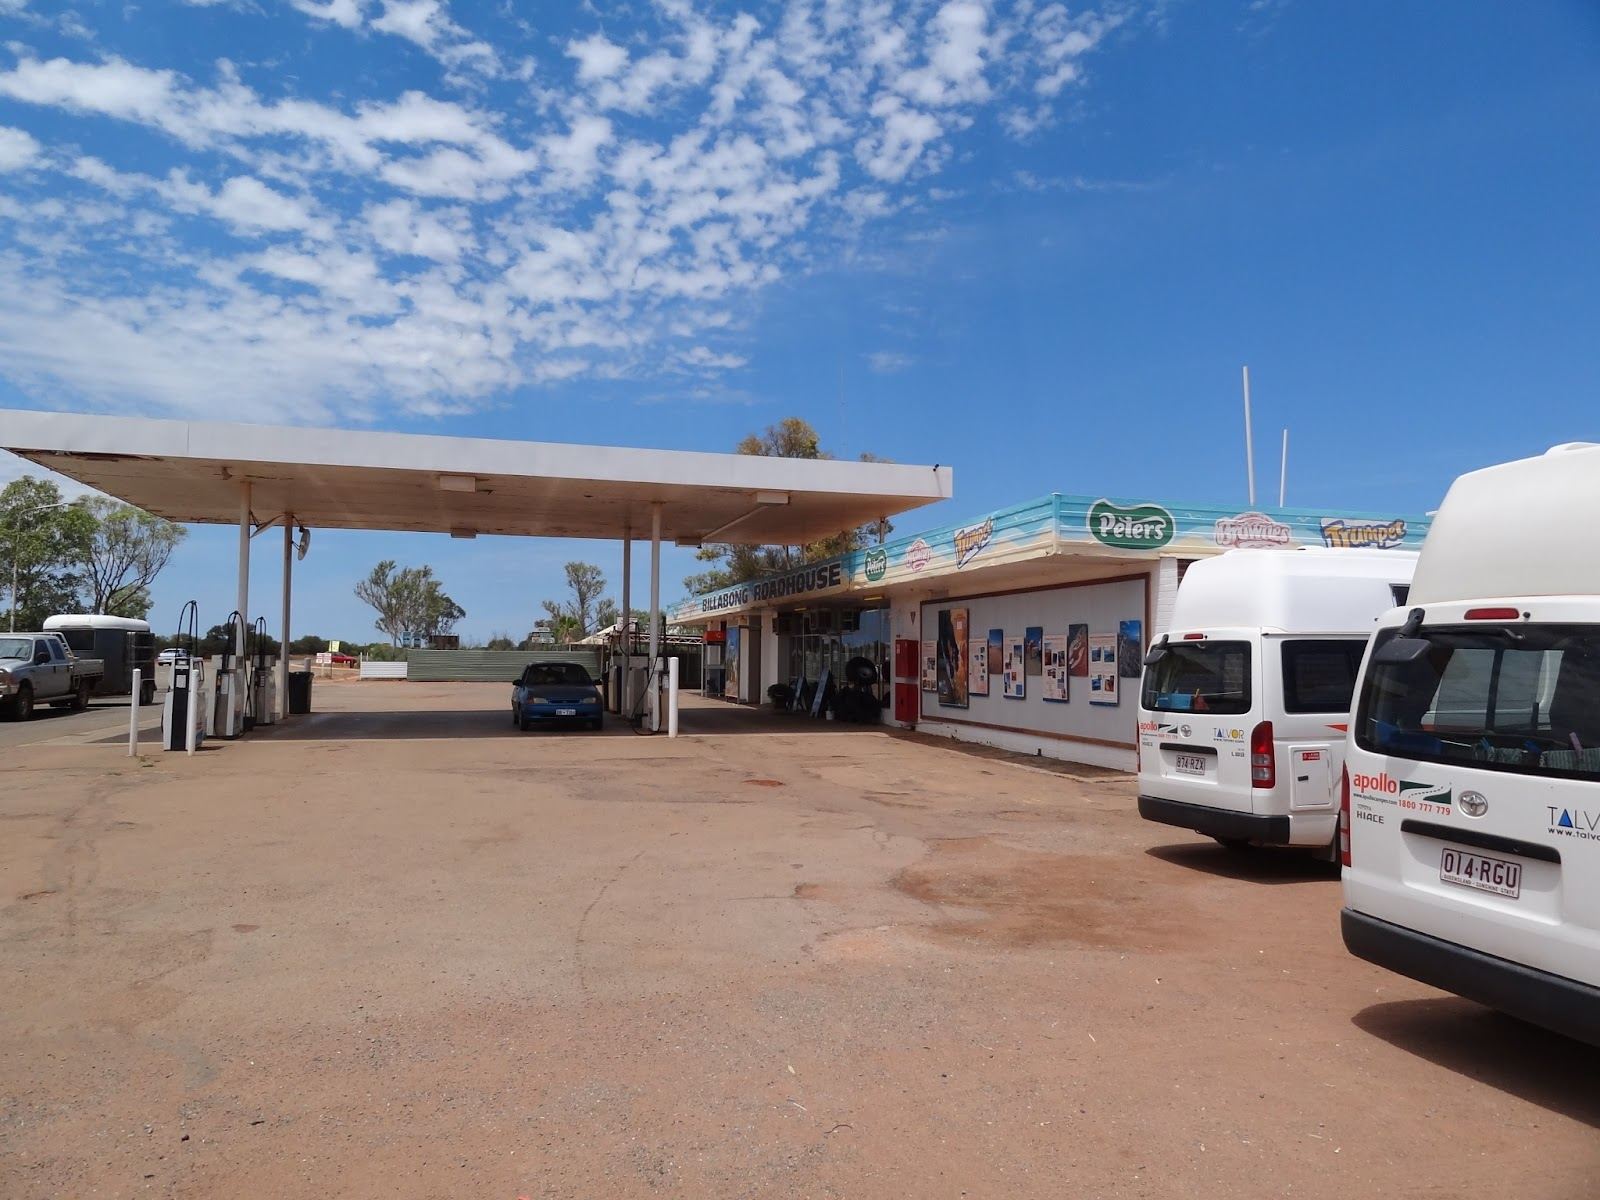 """There was only one town in the 450km I drove today so they have these """"Road houses"""" every 100km or so where you can get food / petrol. This is the Billabong Road House"""